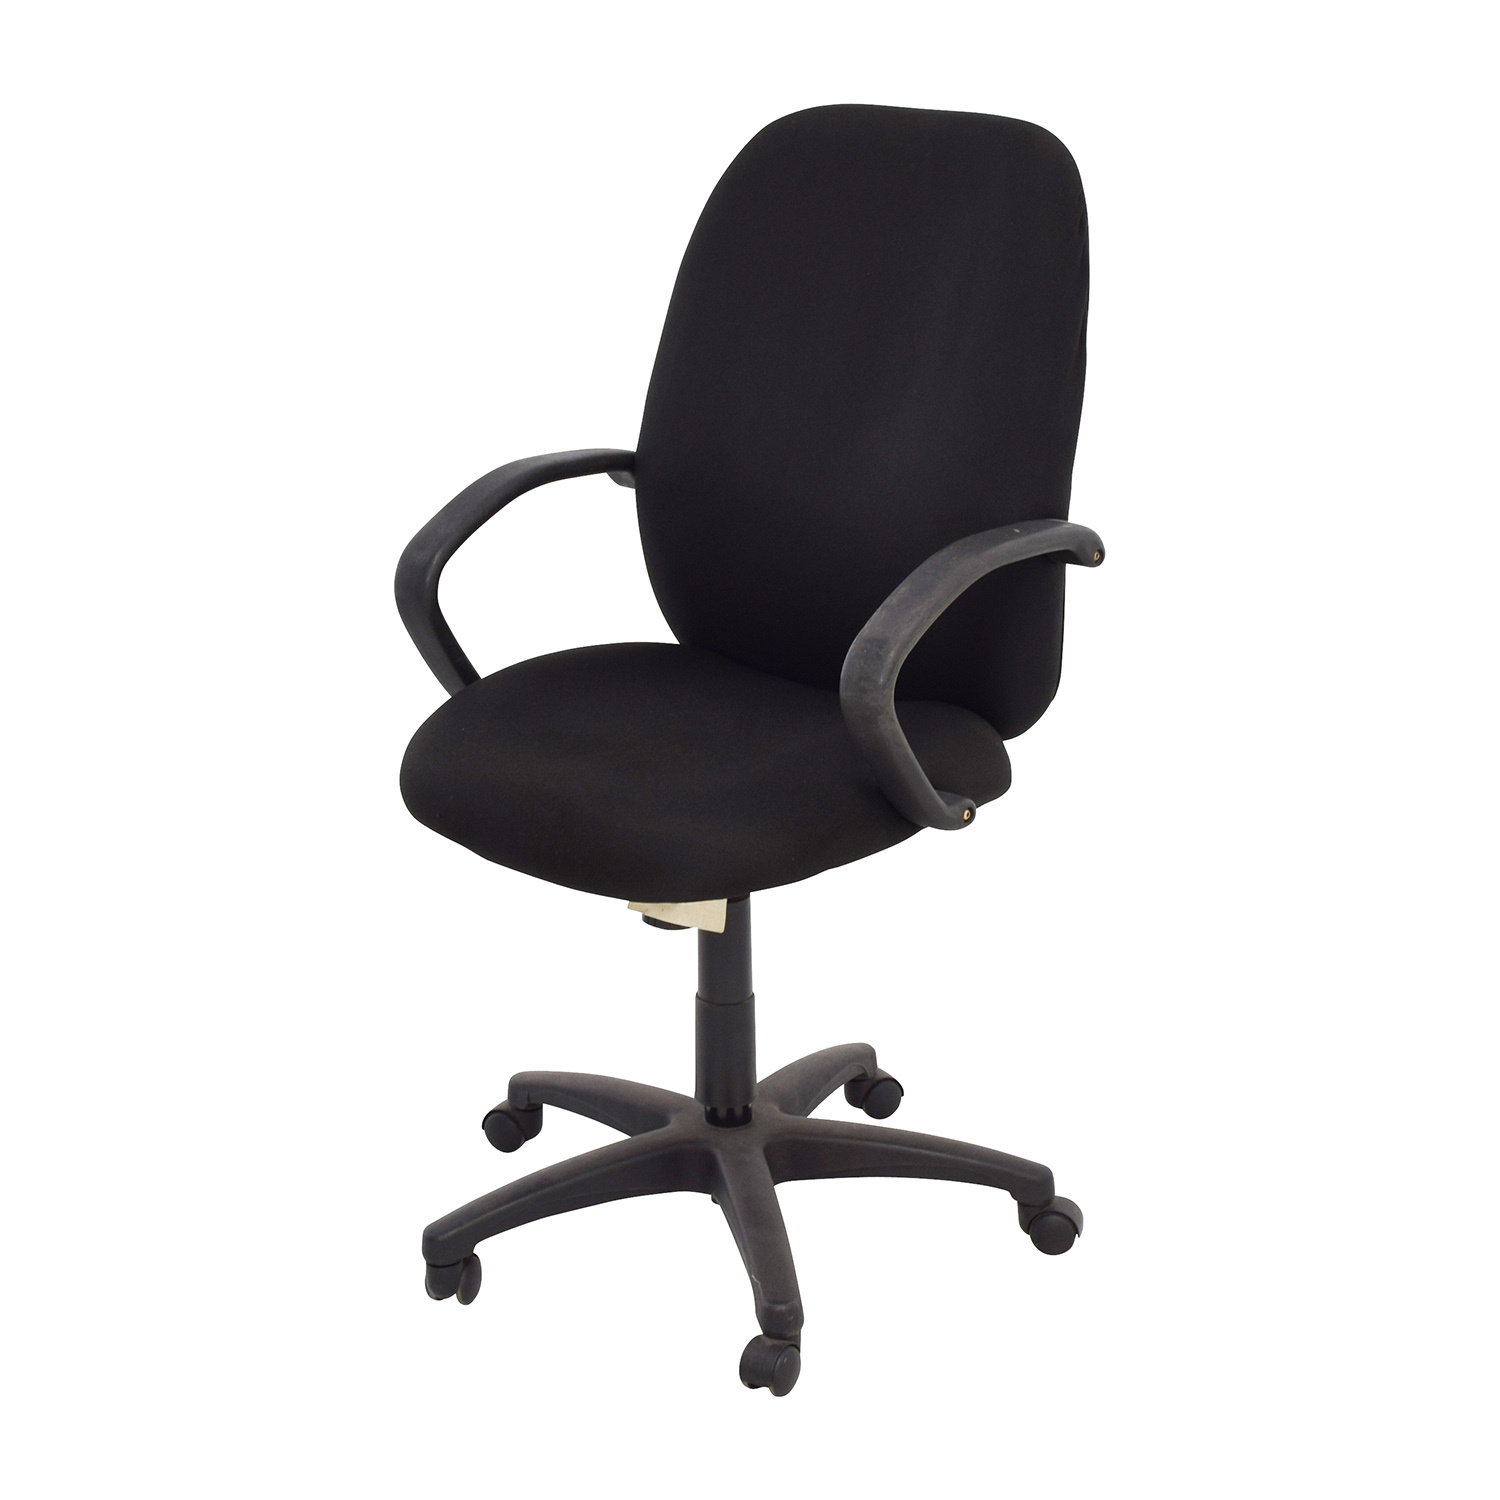 Black Swivel Chair 80 Off Black Swivel Office Chair Chairs